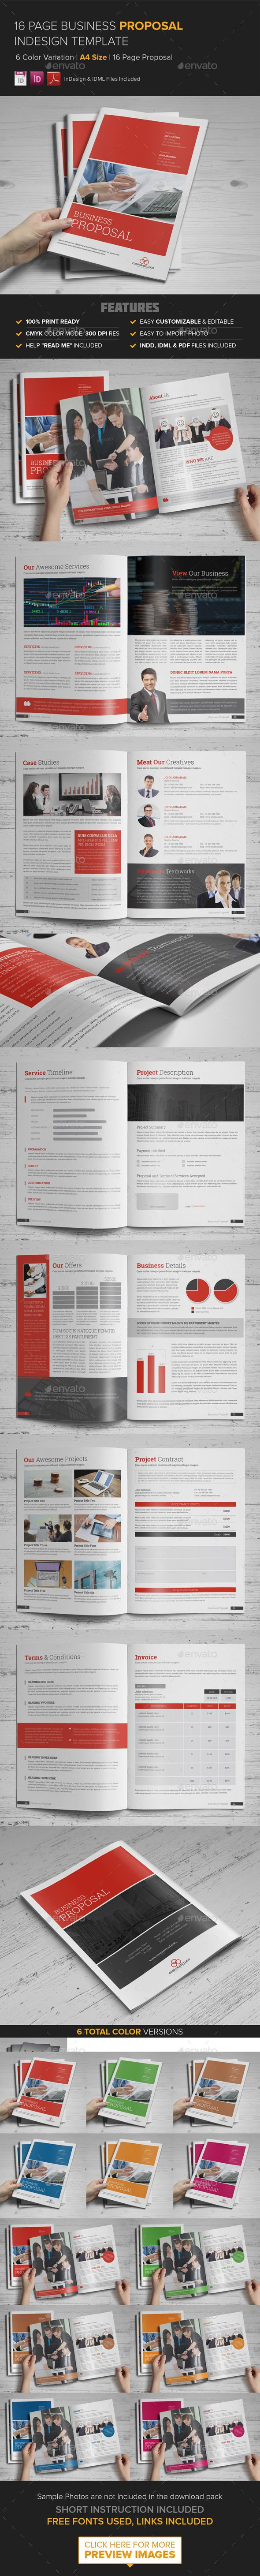 Business Proposal InDesign Template | Publicitaria, Papelería y Catálogo